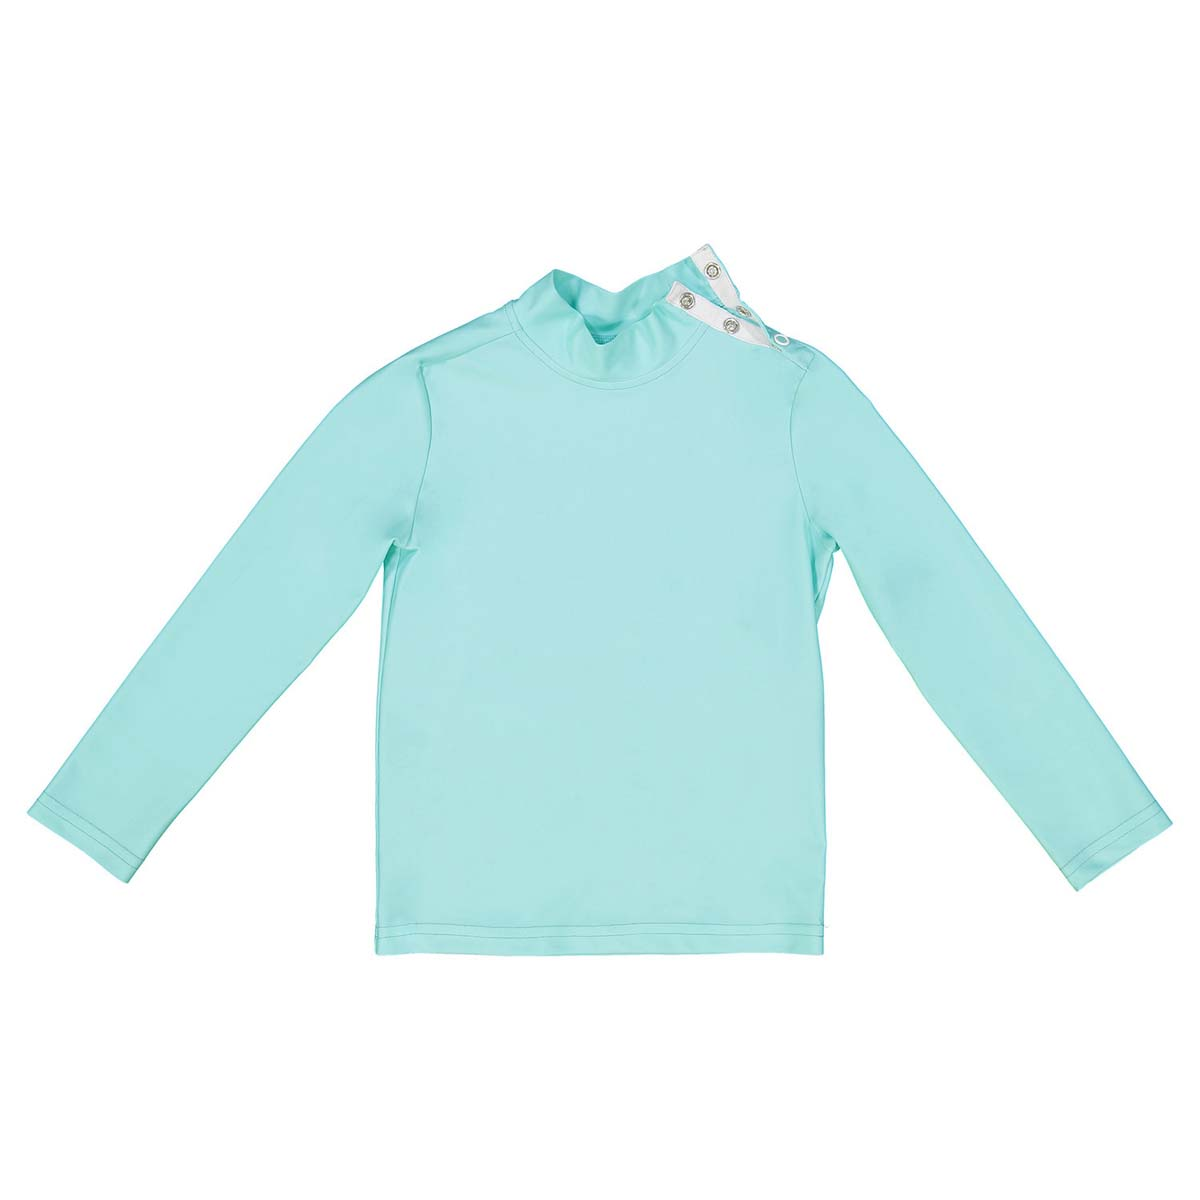 Canopea Turbot Rashguard in Aqua Green